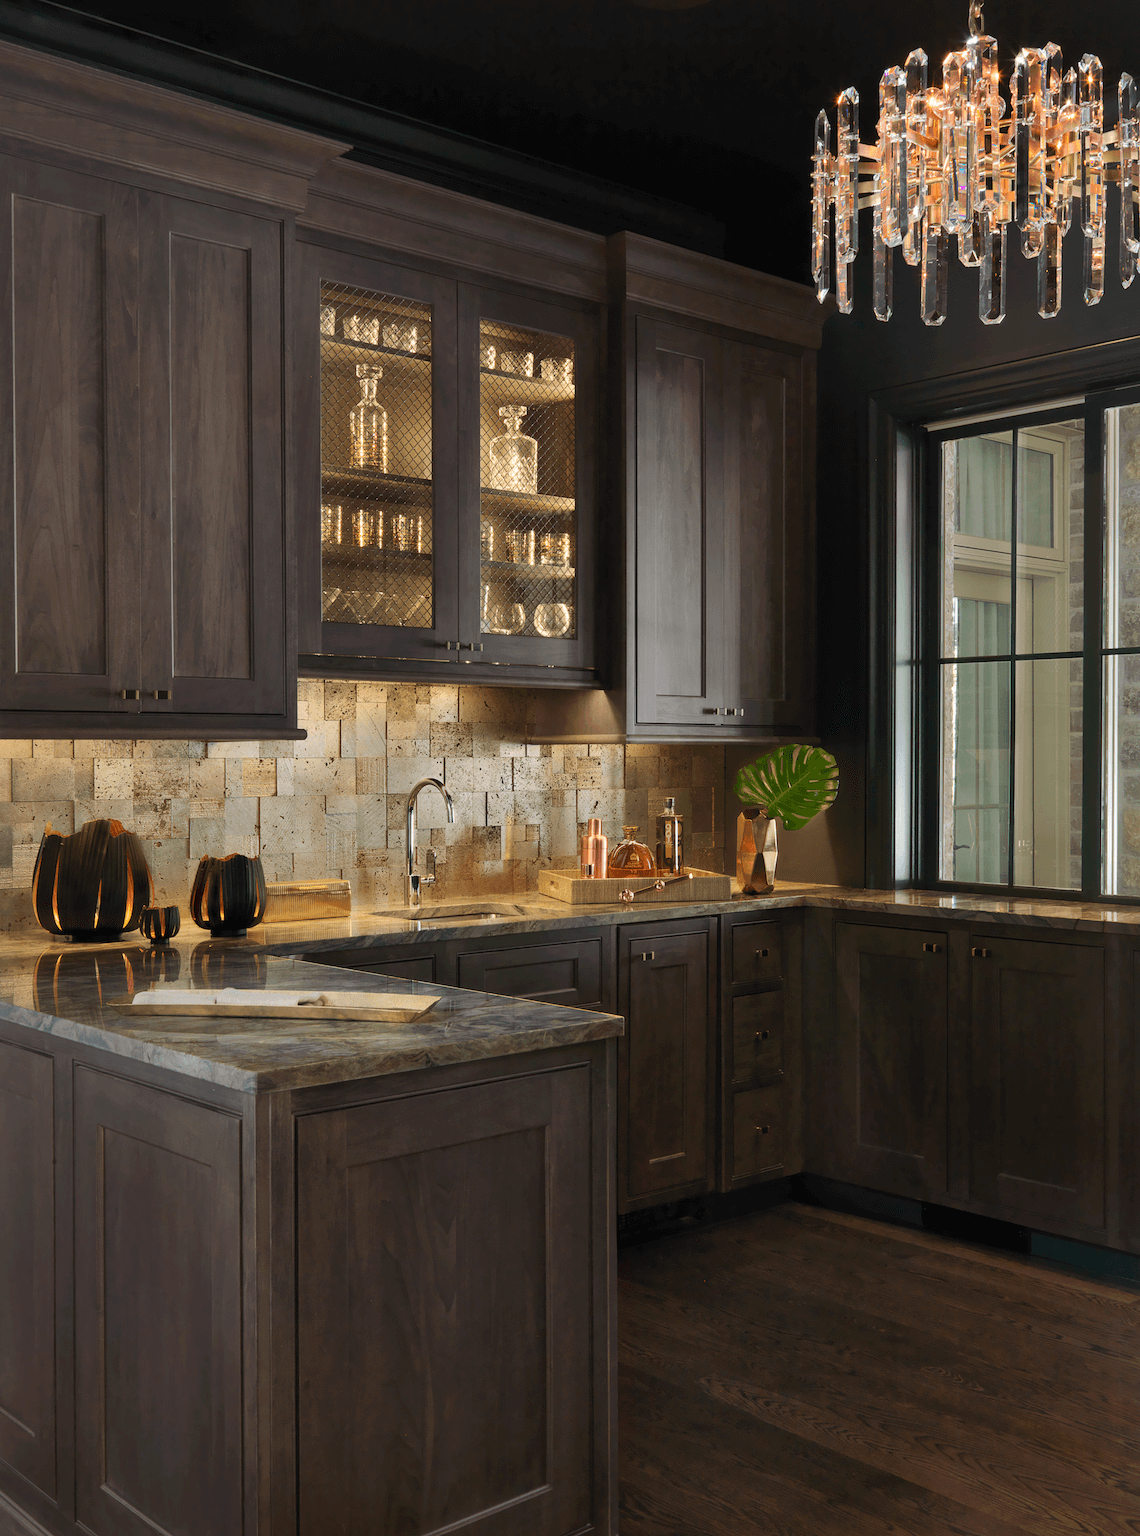 Wet bar design ideas essentials interior design center Wet bar images